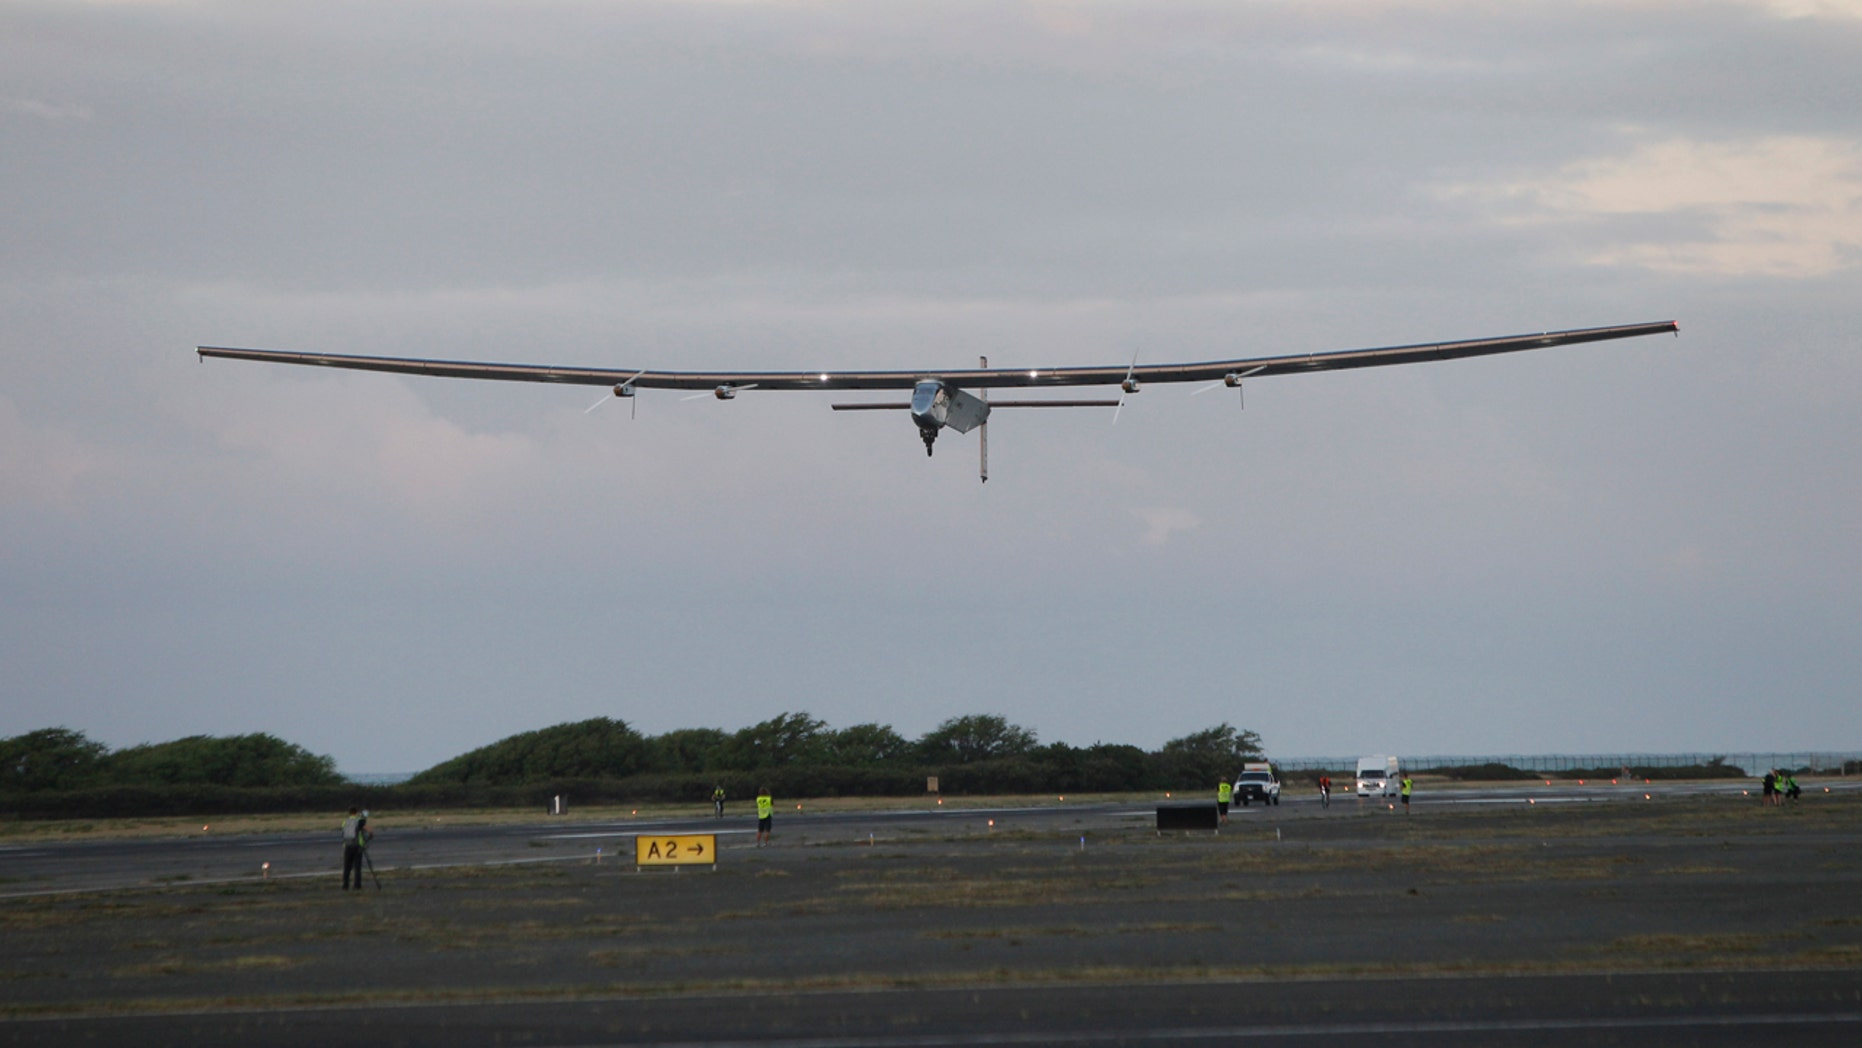 April 21, 2016: The Solar Impulse 2 solar plane lifts off at the Kalaeloa Airport in Kapolei, Hawaii. The solar plane will fly a two-and-a-half day journey to Northern California.